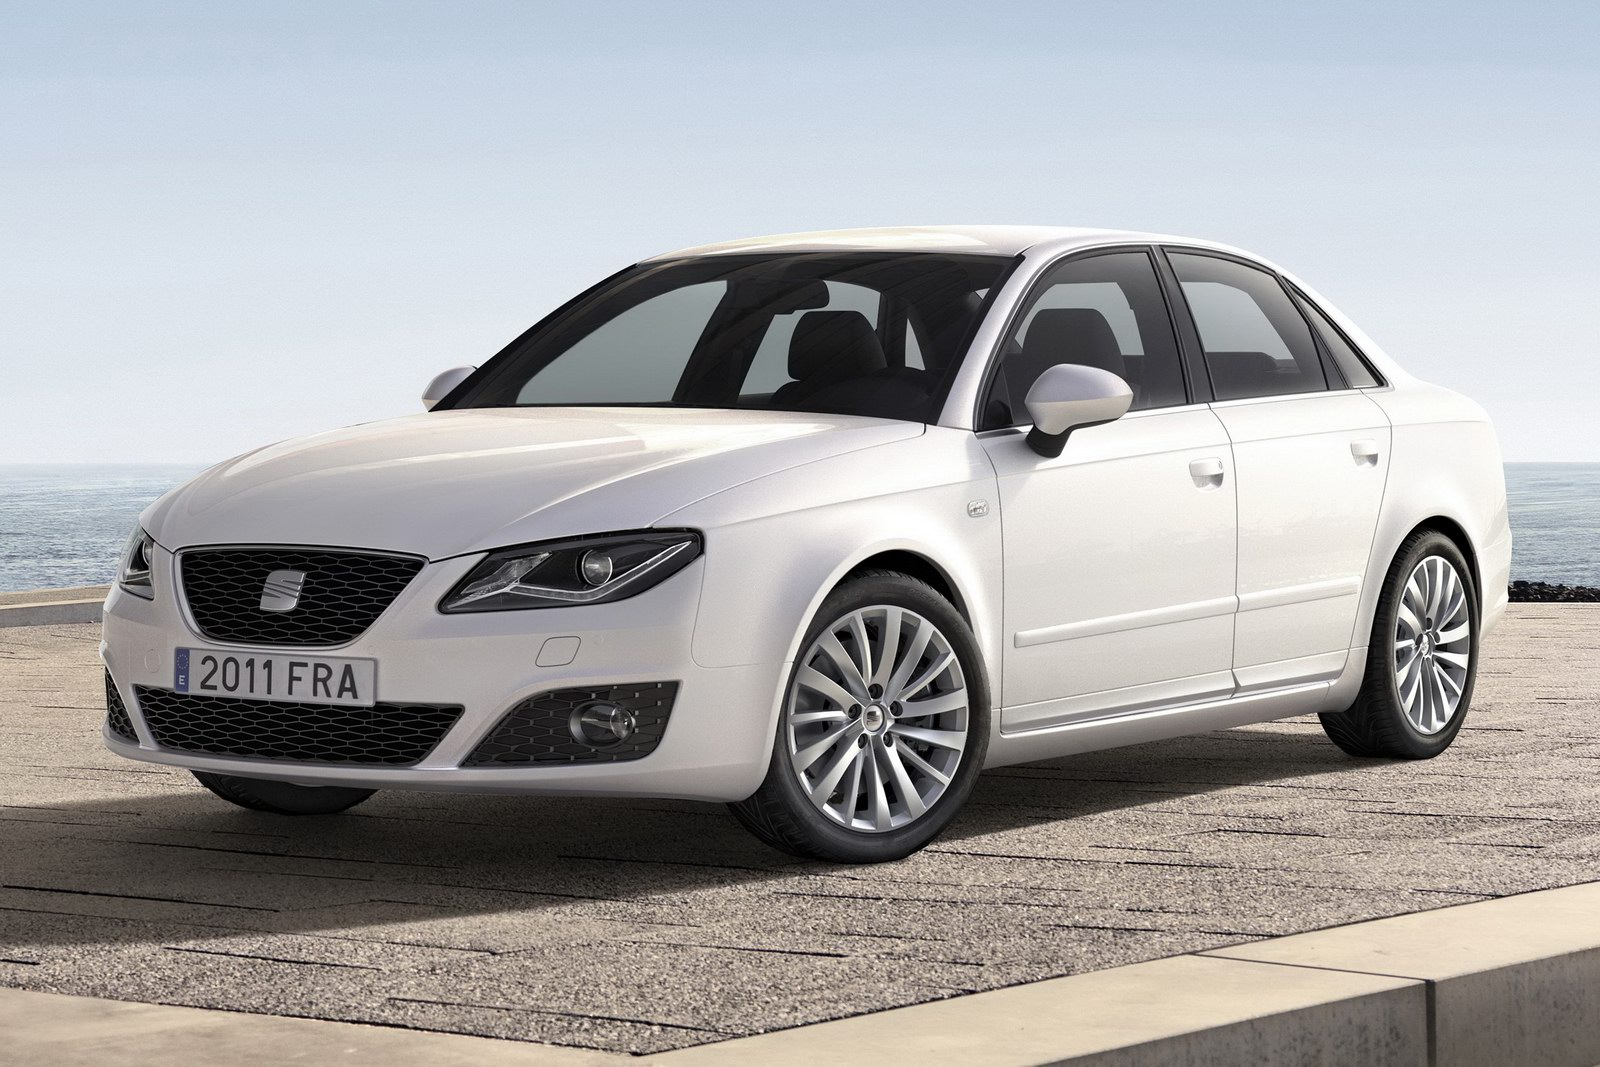 2012 SEAT Exeo facelift 1 2012 SEAT EXEO MODIFIED VERSION UNVEILED